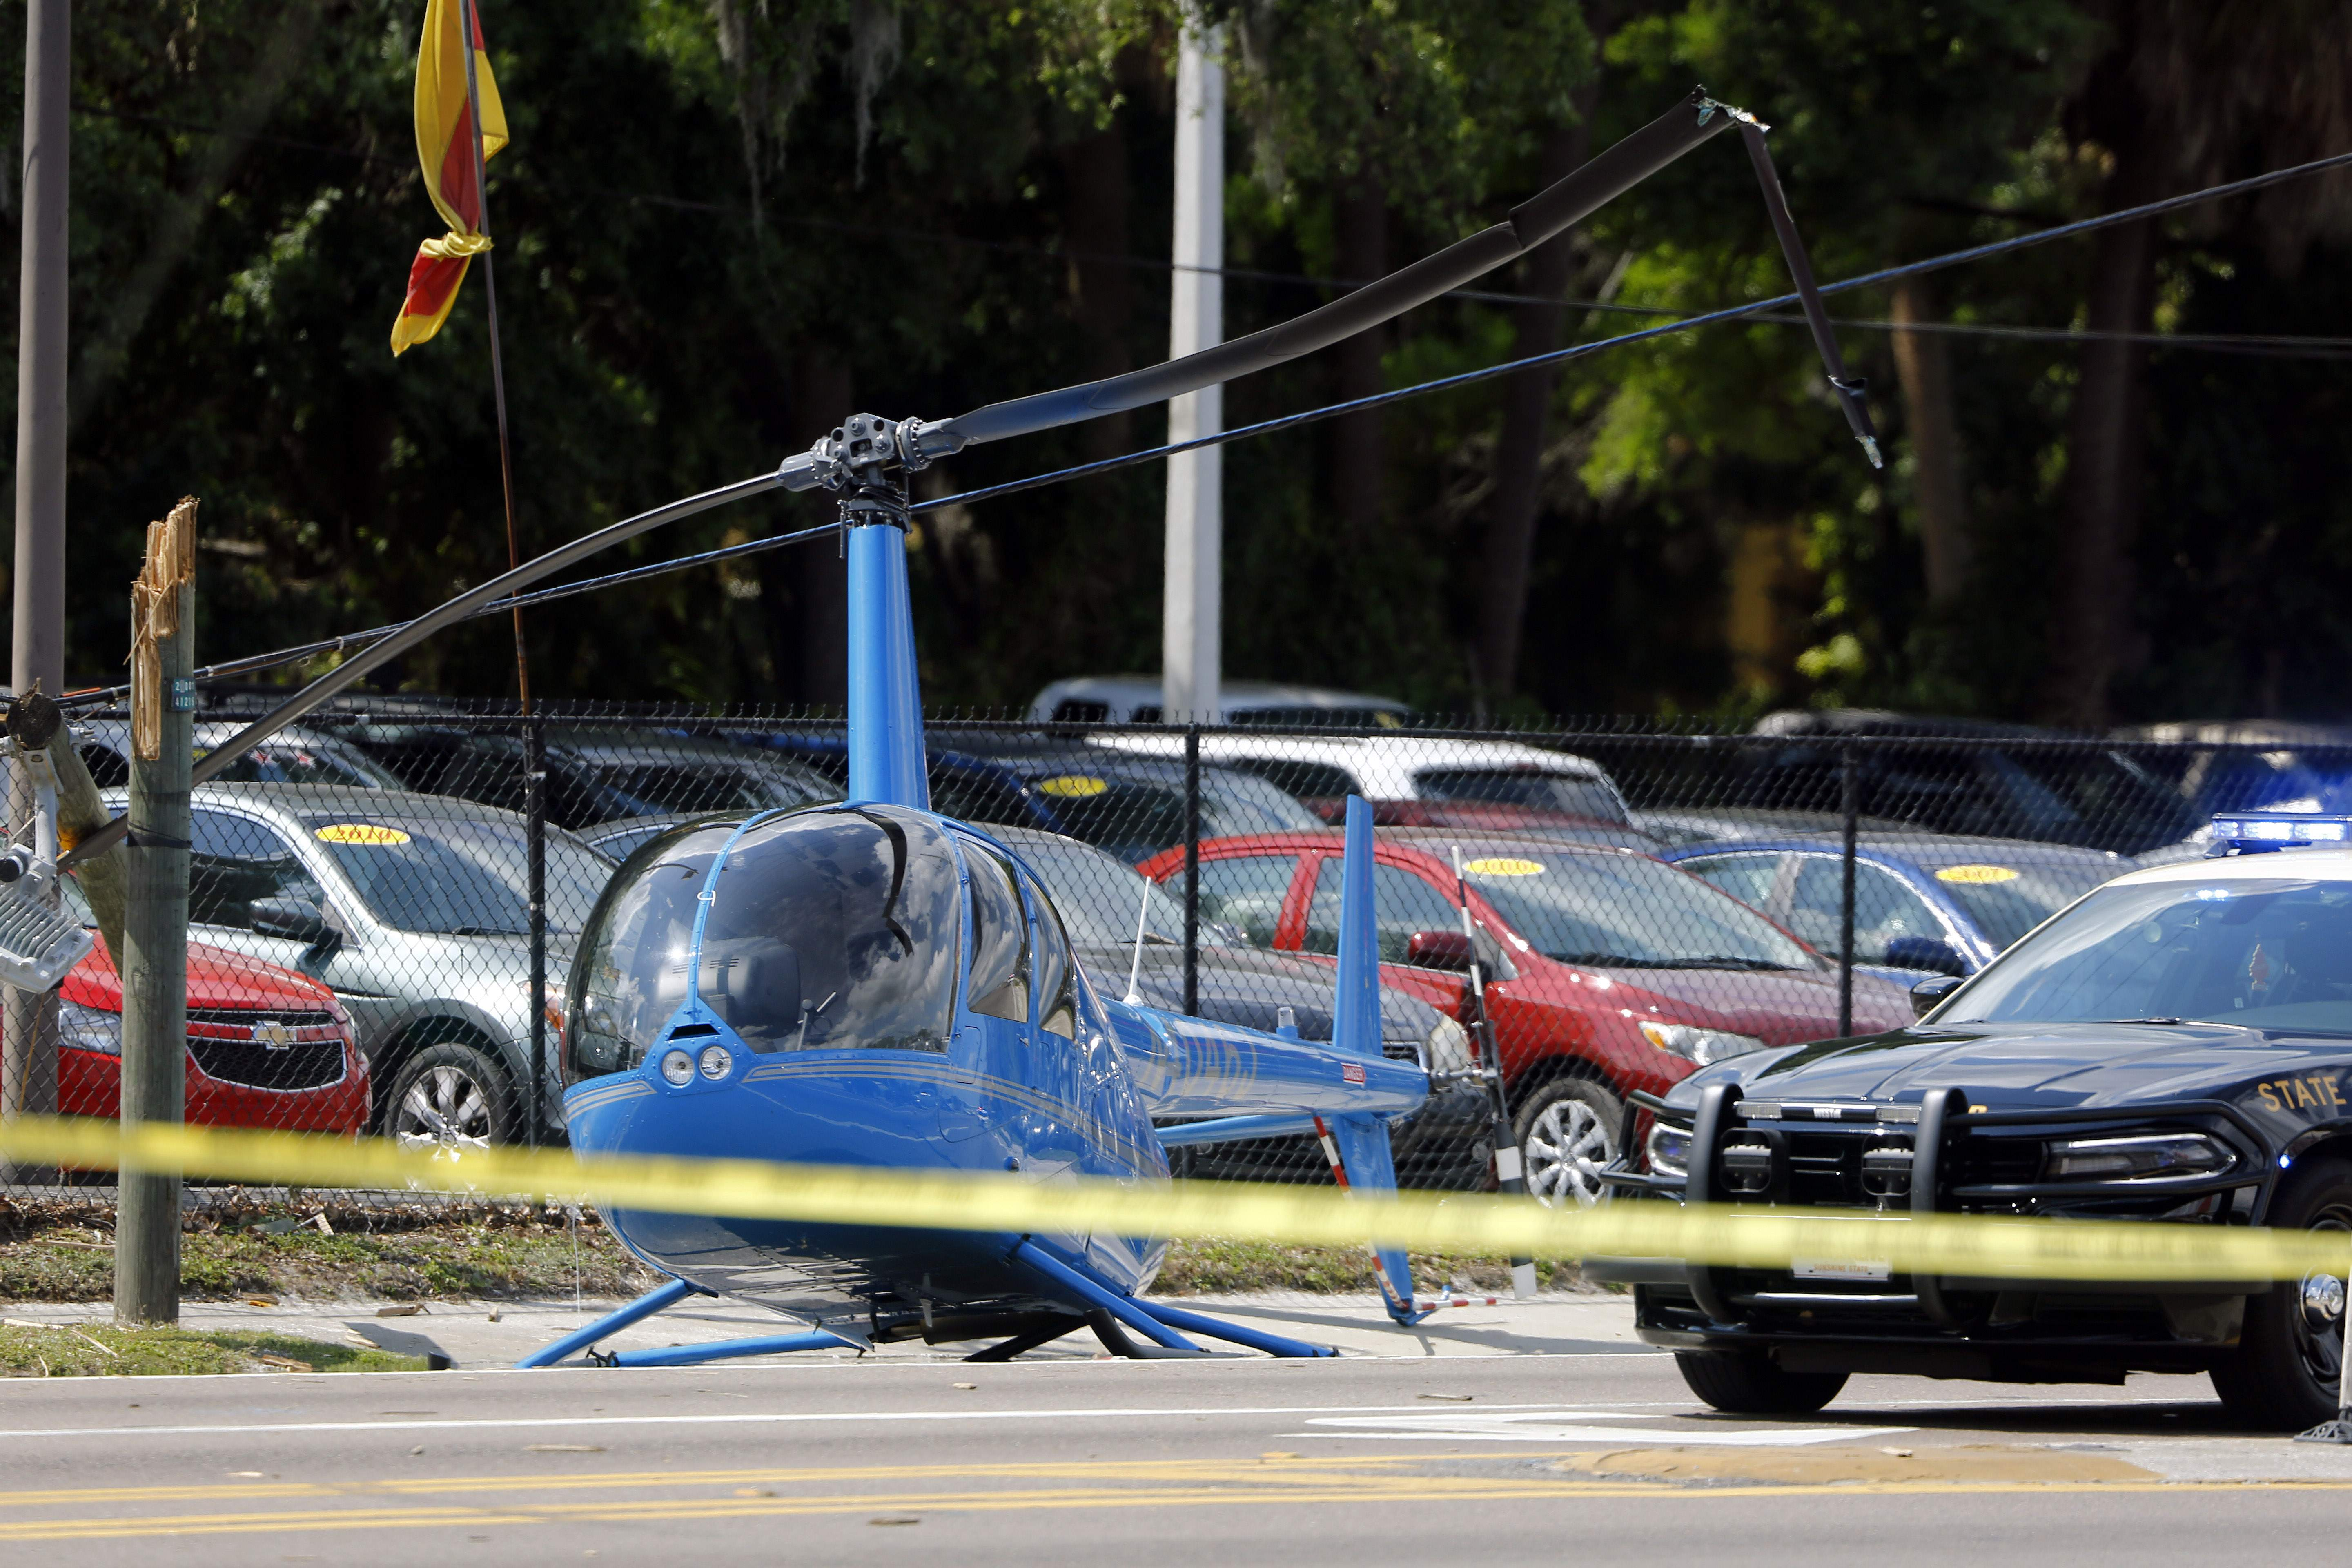 VIDEO: Watch a helicopter crash land on a busy Tampa road